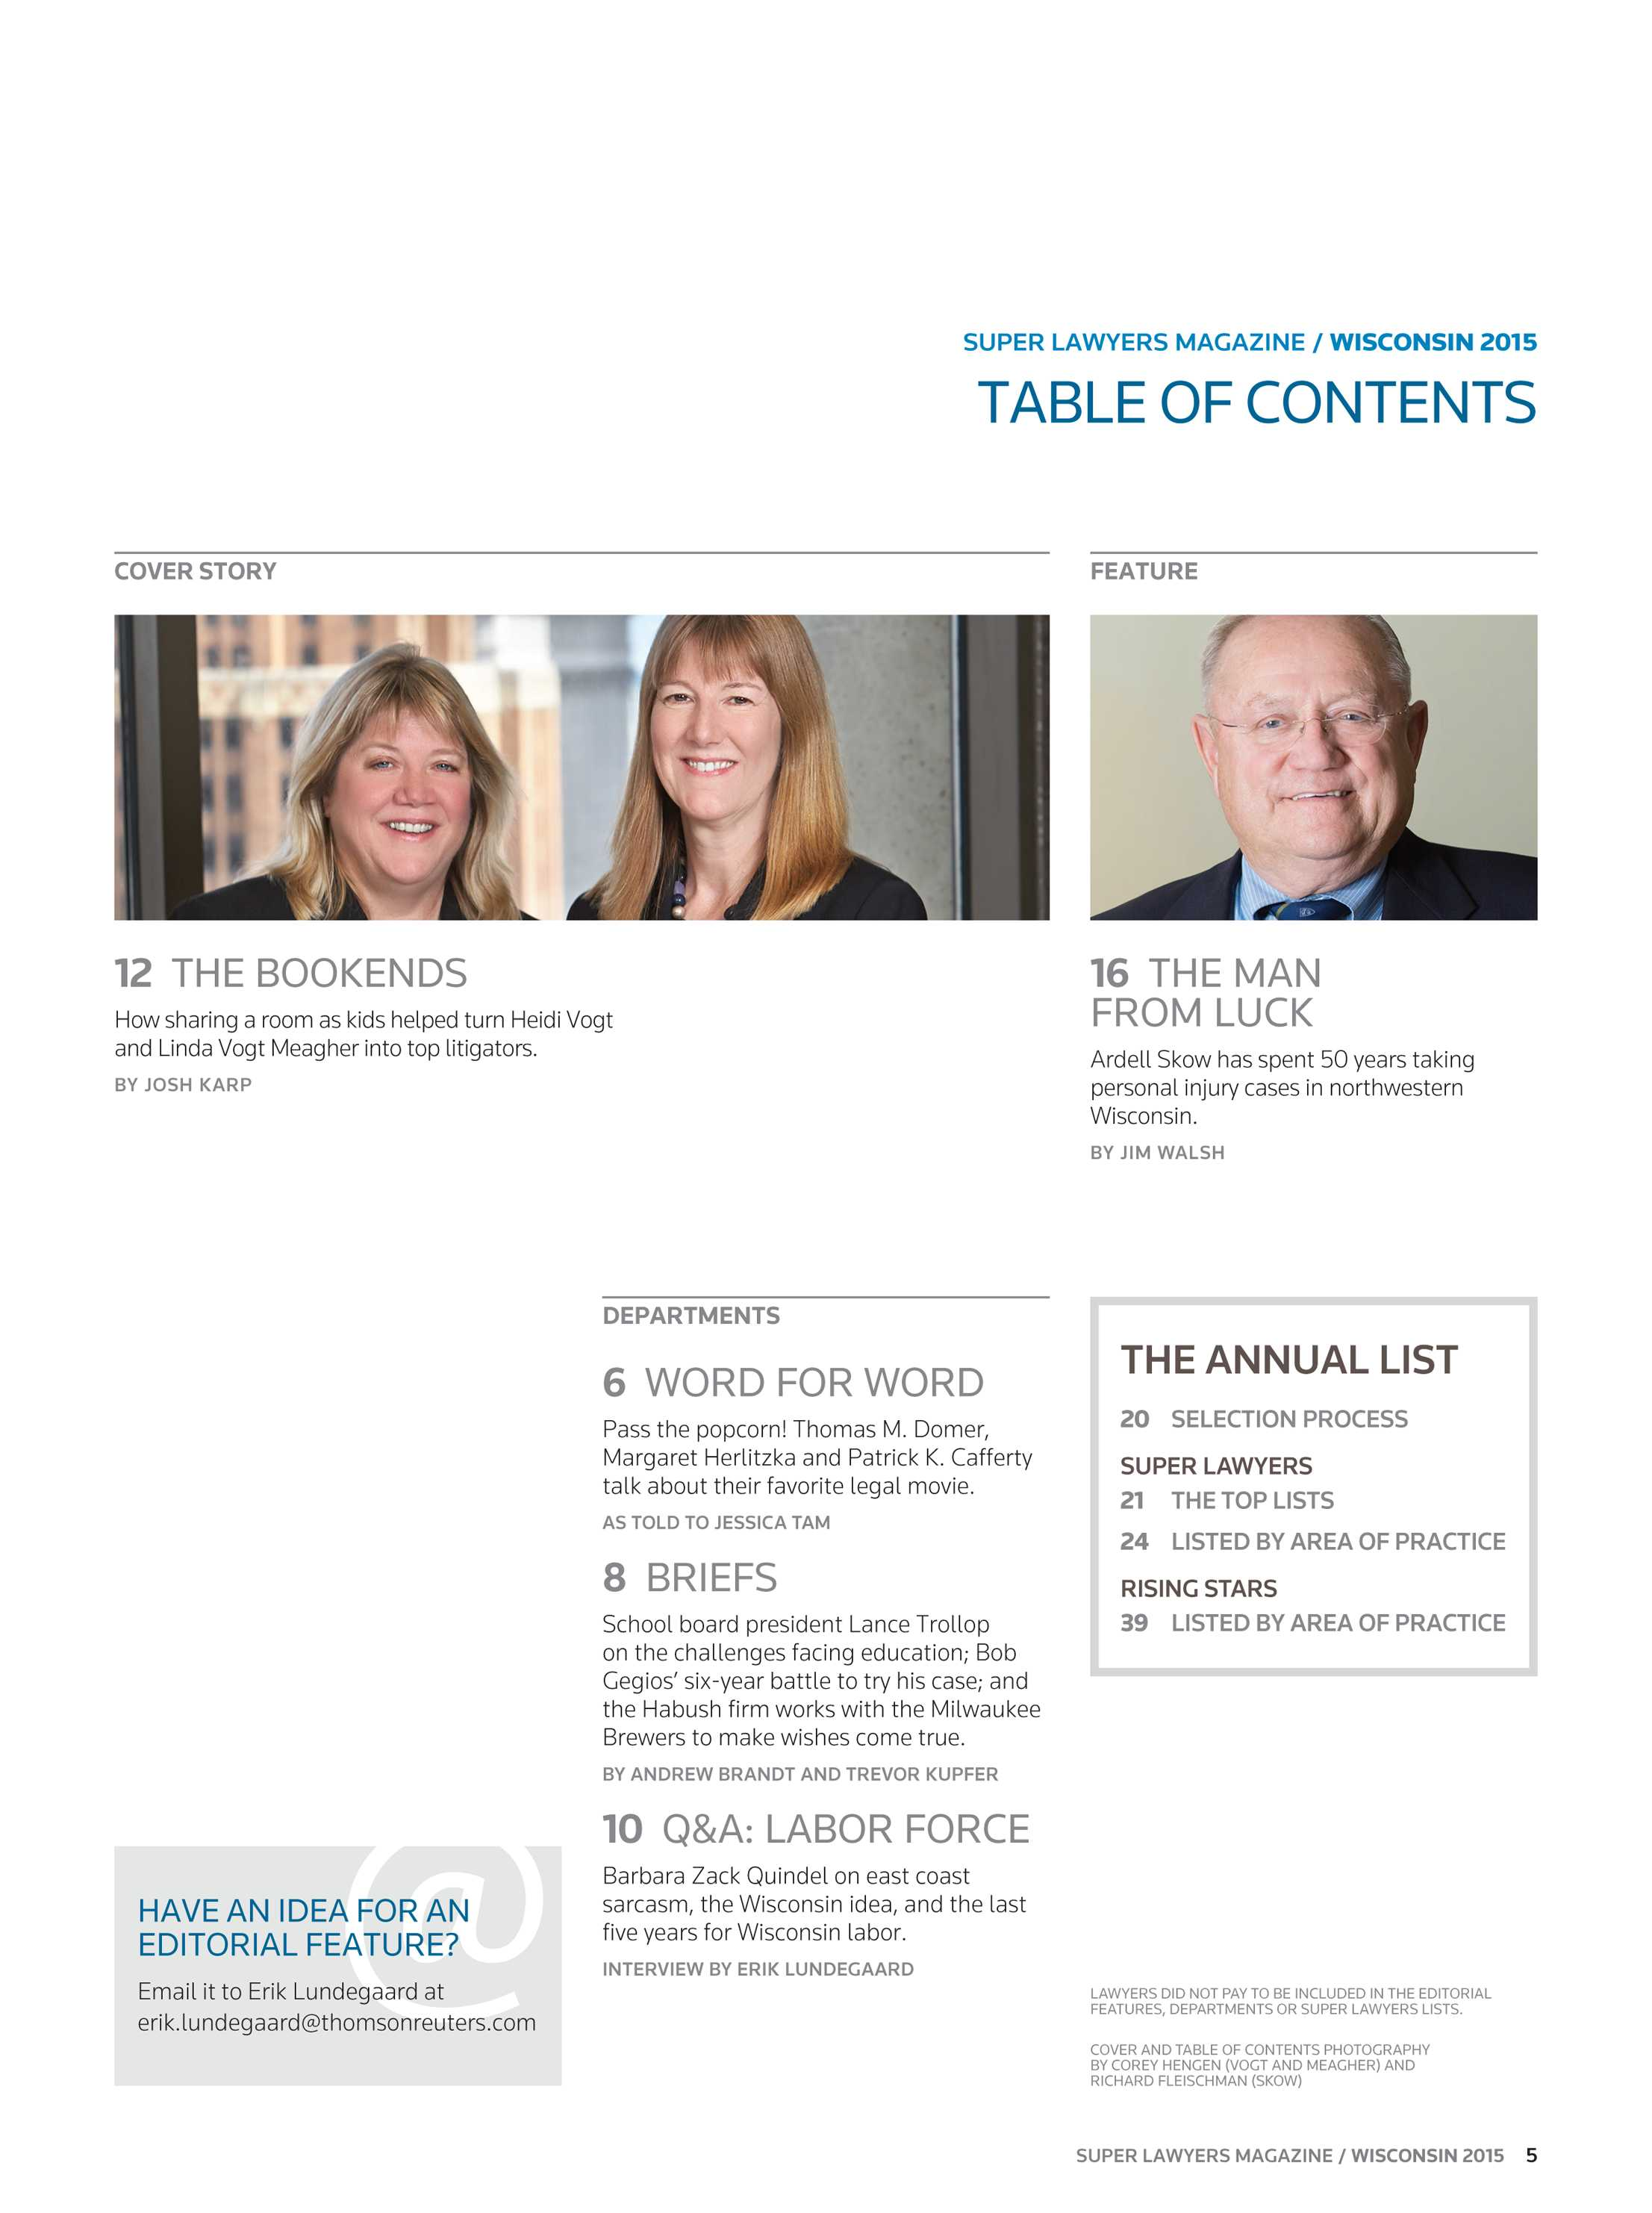 Super Lawyers - Wisconsin 2015 - page 5